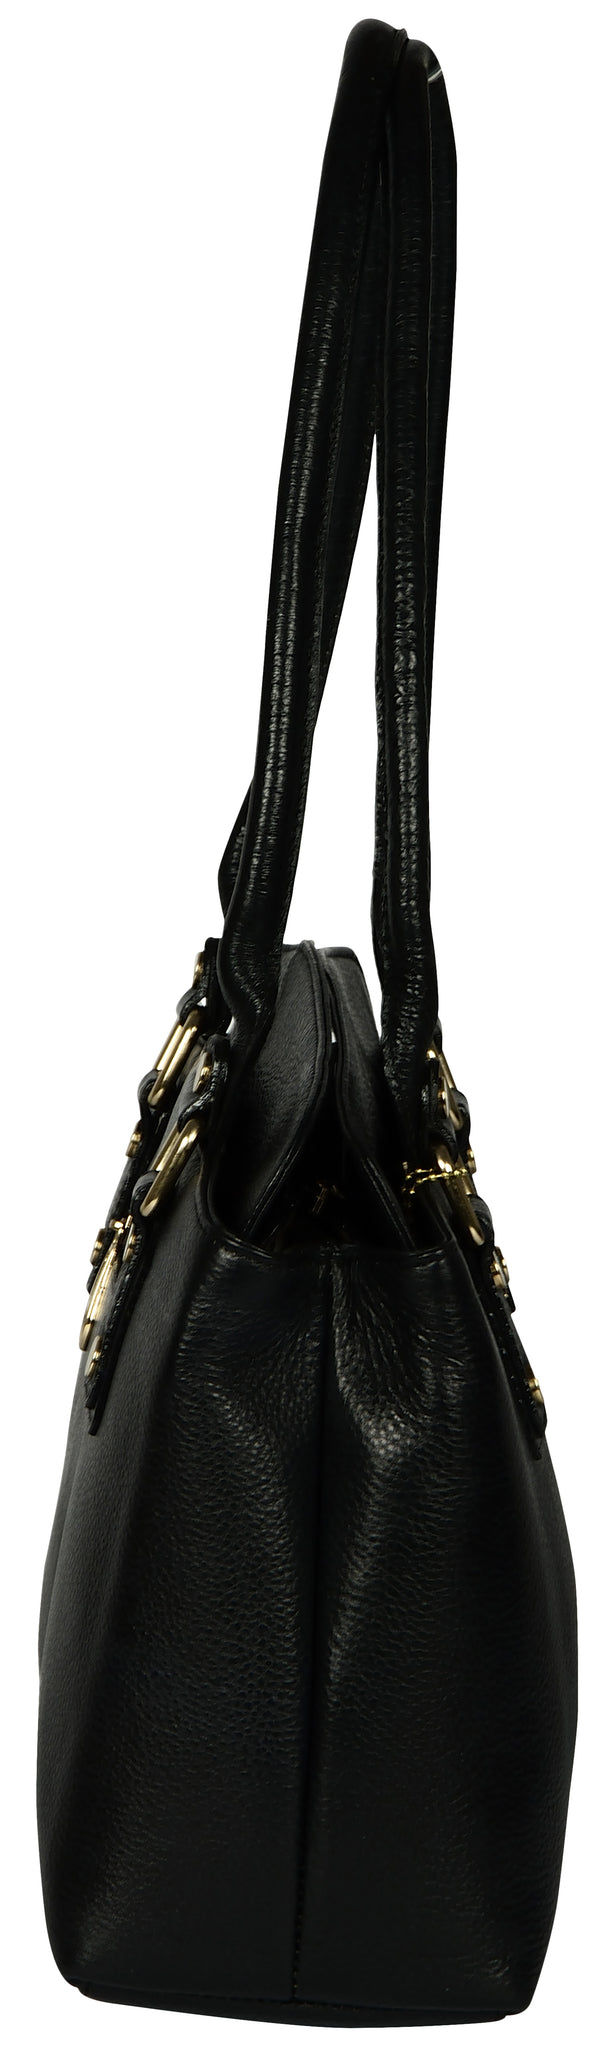 Women's solid black leather bag